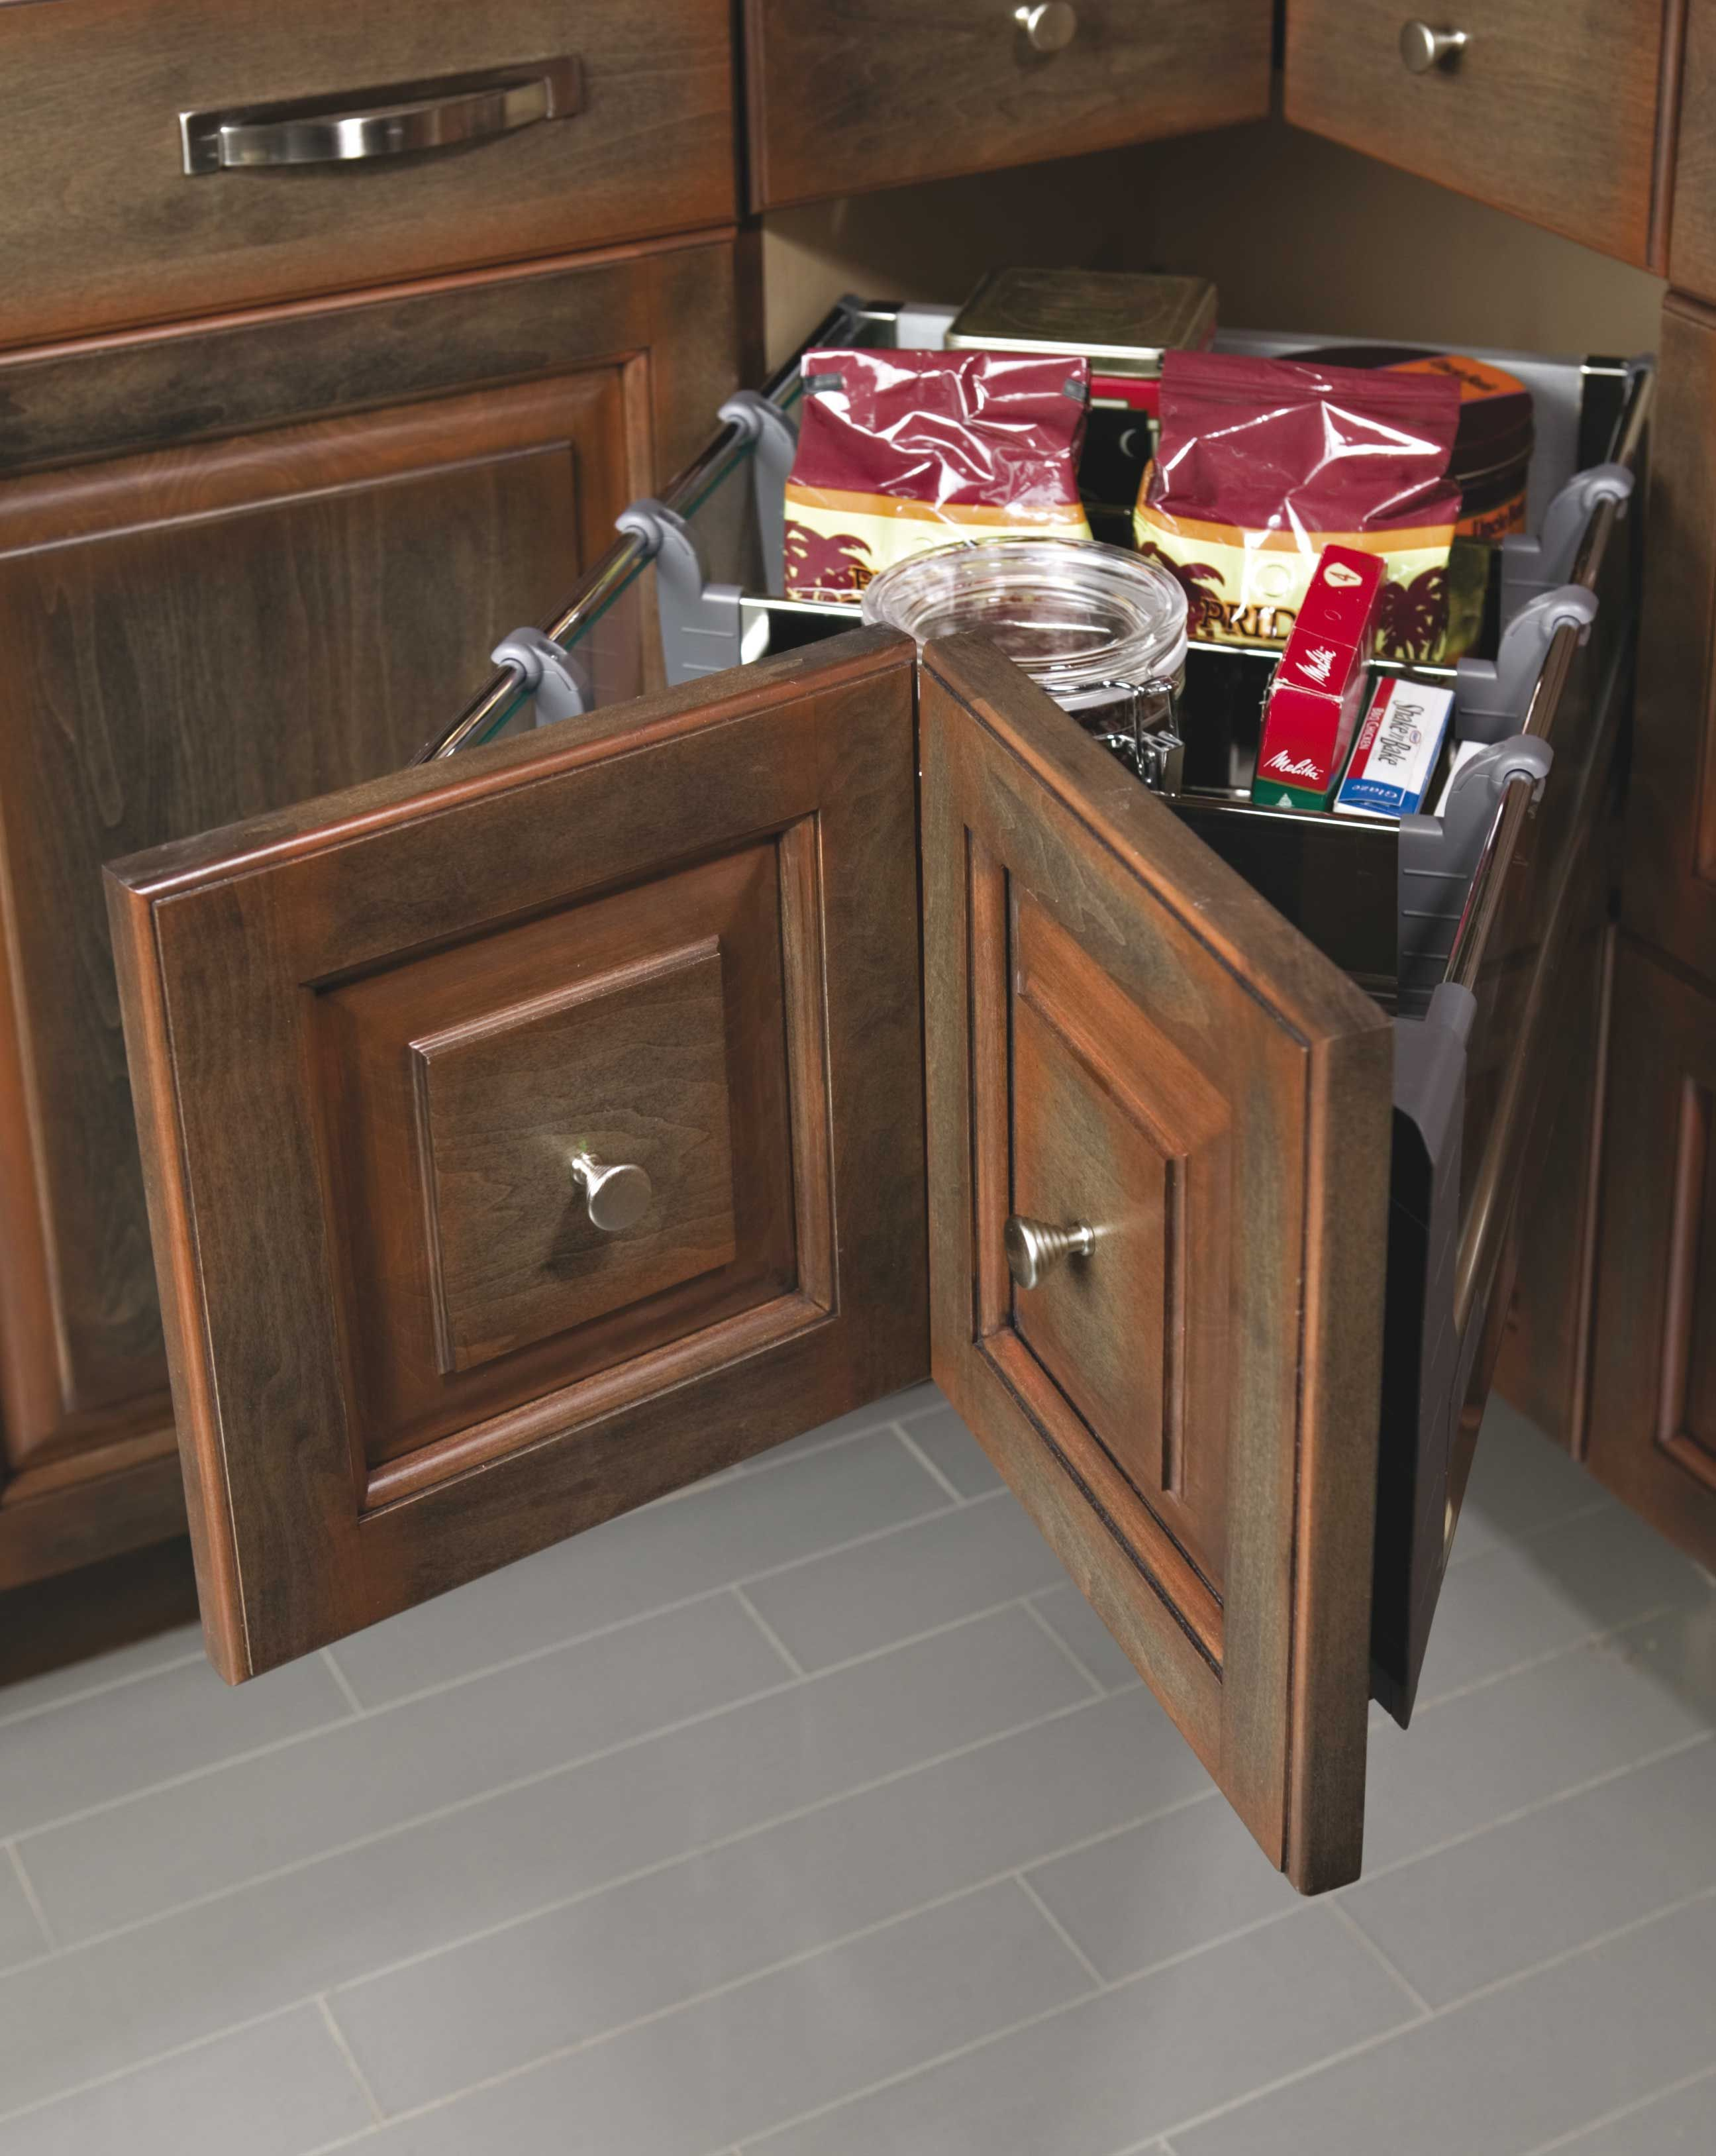 Grandior Kitchens and baths offers cabinet organizing ...